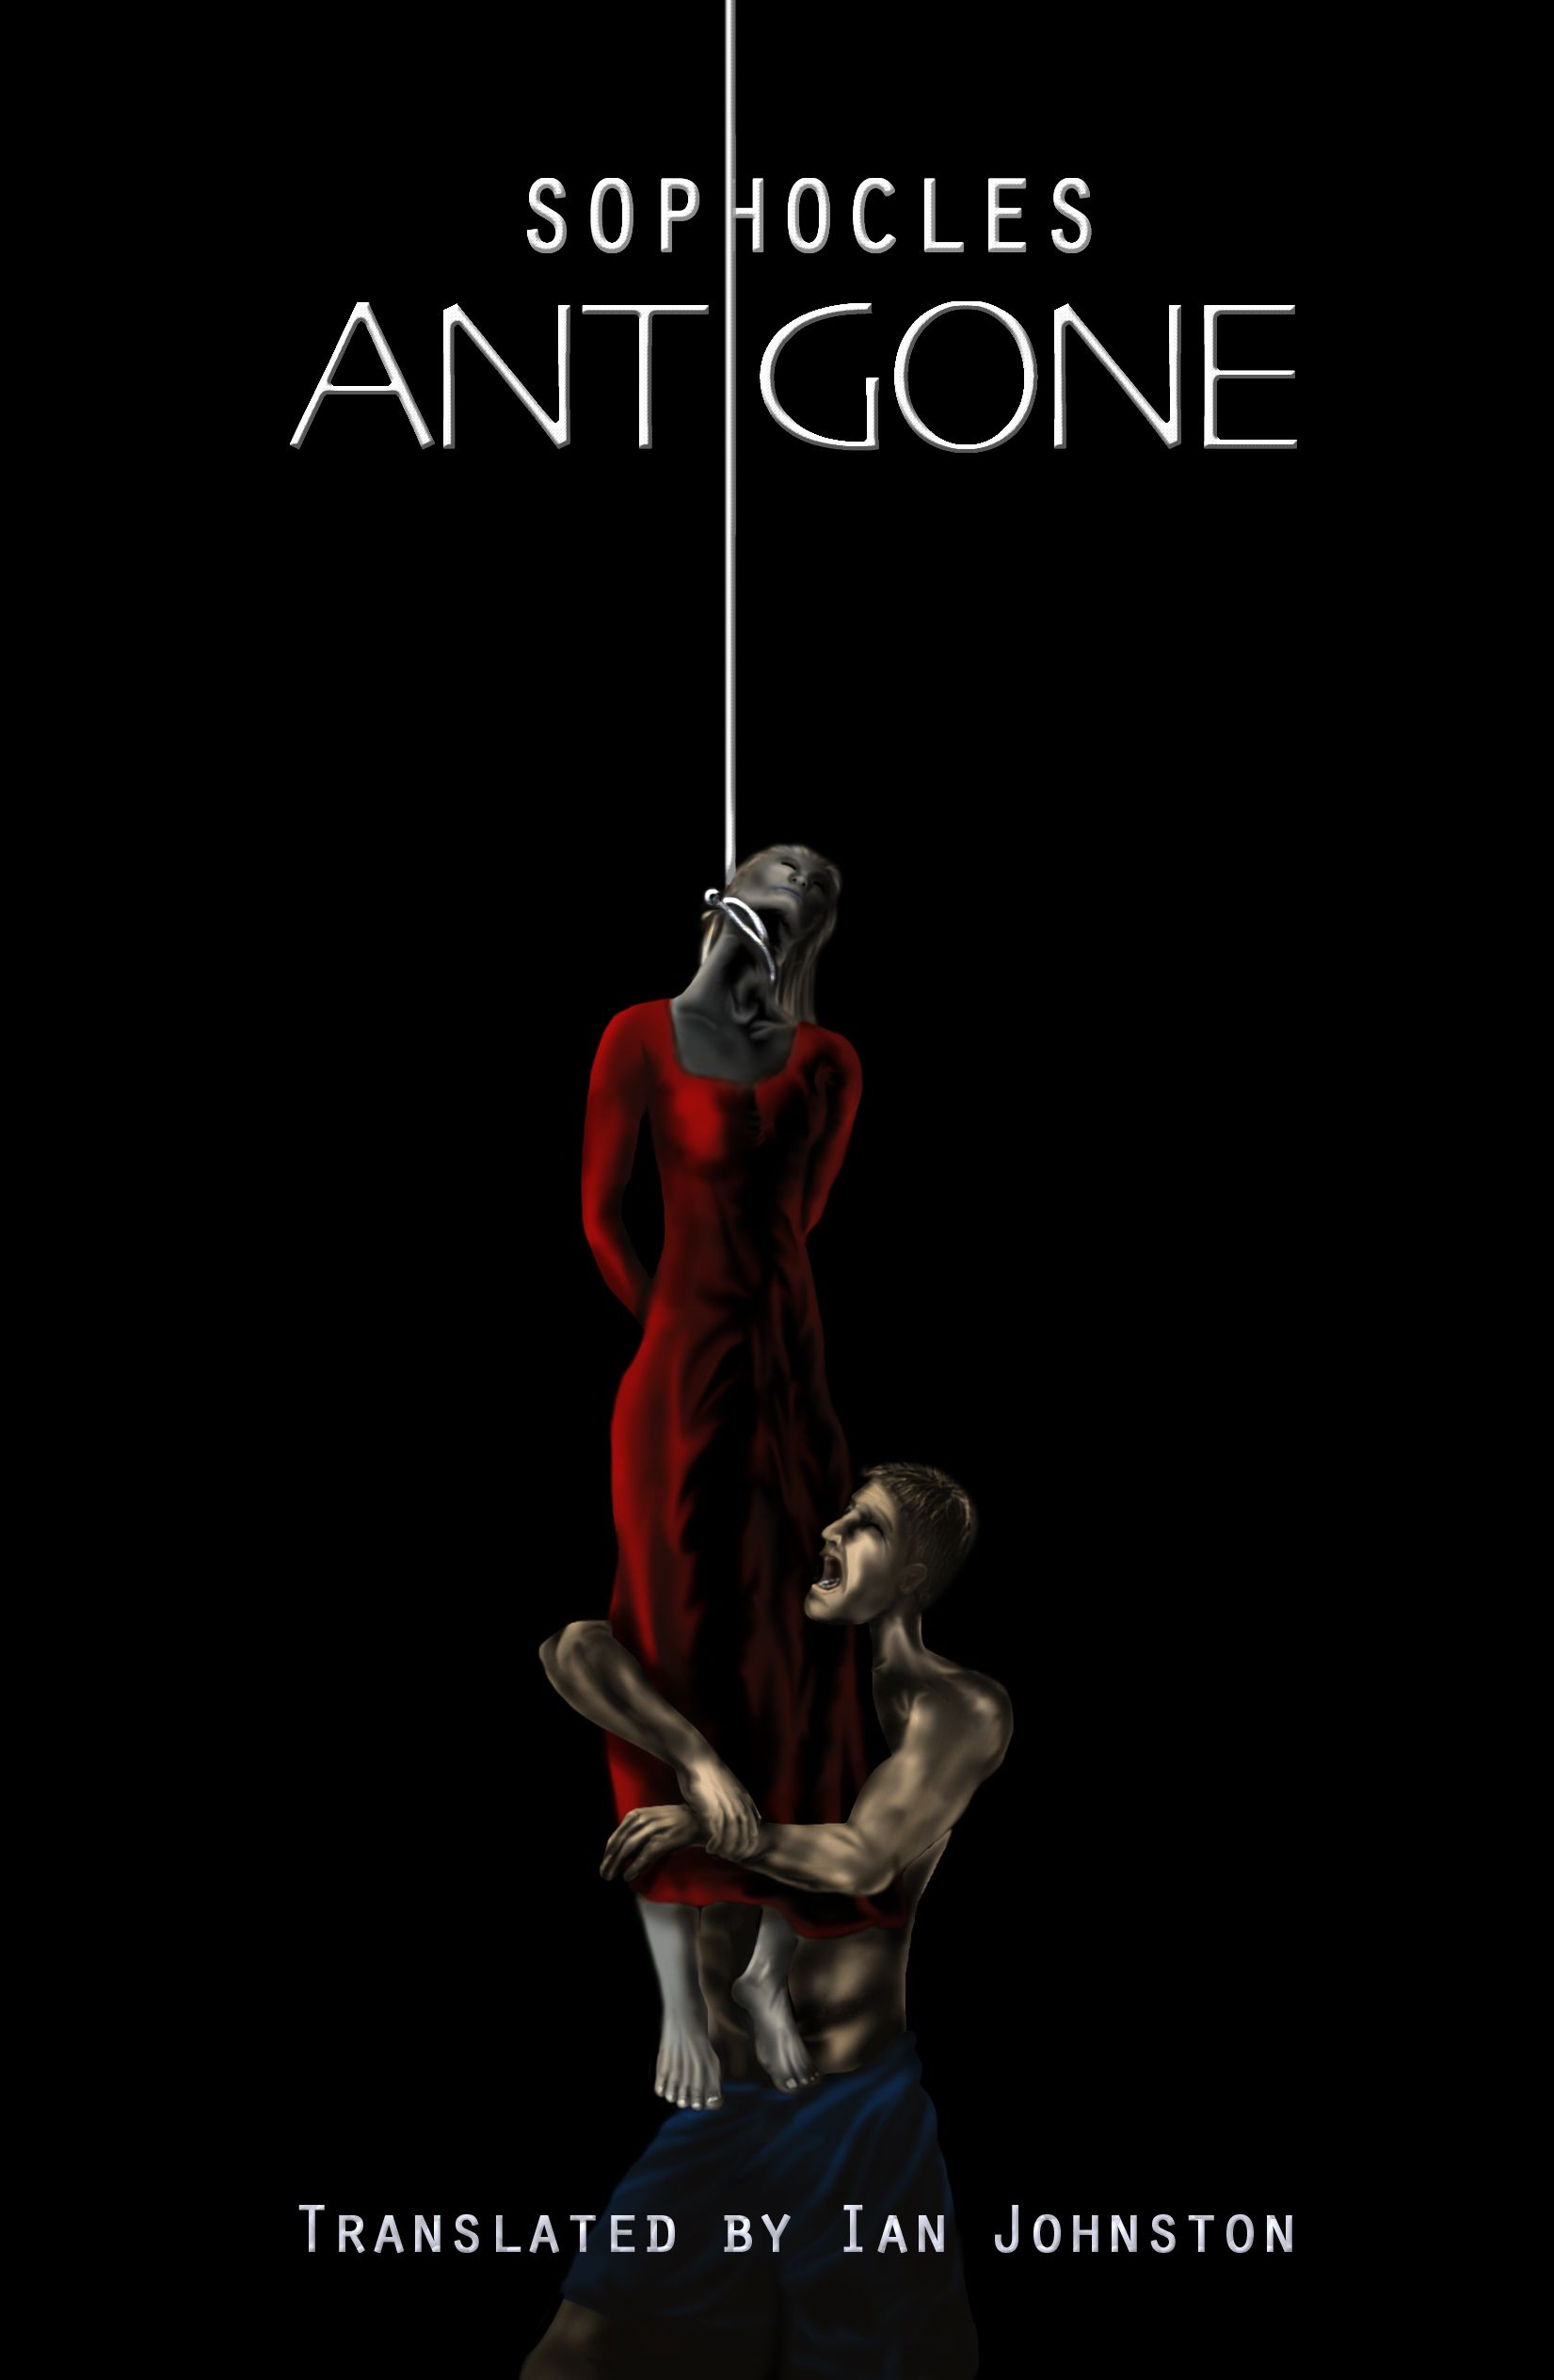 an analysis of antigone as a tragic hero in sophocles play - antigone - creon defines the tragic hero antigone, written by sophocles is a tale of a tragic hero who suffers with the recognition and realization of his tragic flaw although this short story is titled after antigone, creon is the main character and he provides the moral significance in the play.